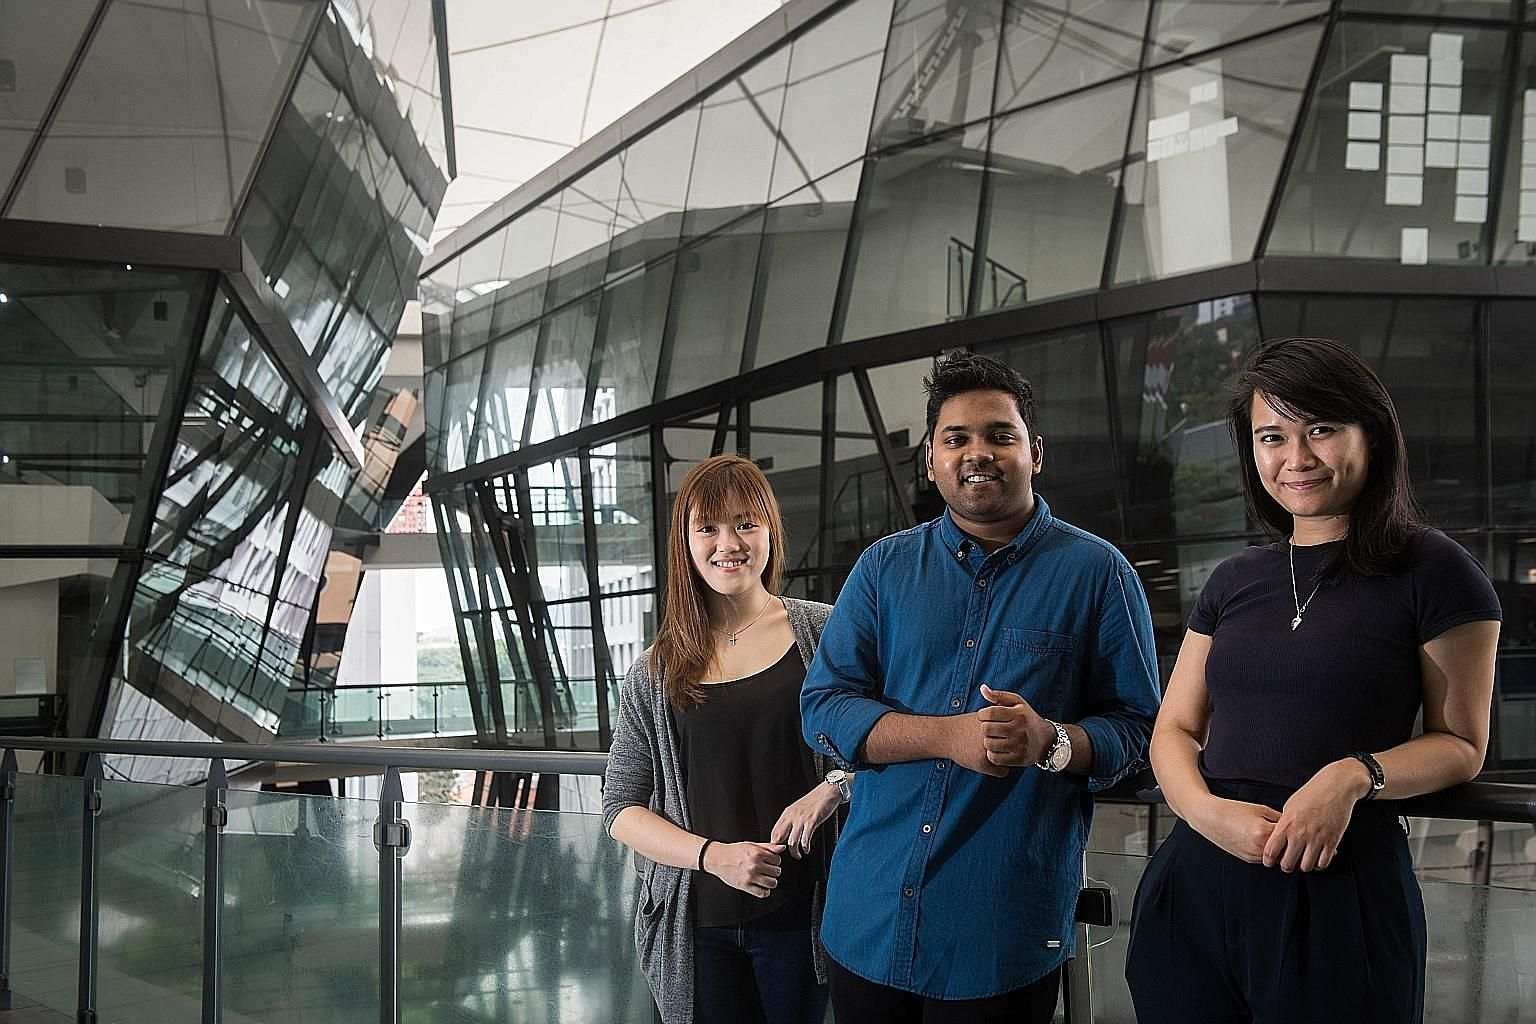 (From far left) Ms Michelle Ler was handpicked to be assistant musical director for the 2019 Australian touring production of Grease - The Arena Experience; Mr Eshan Denipitiya, who plays the piano and loves experimenting with styles and genres outsi